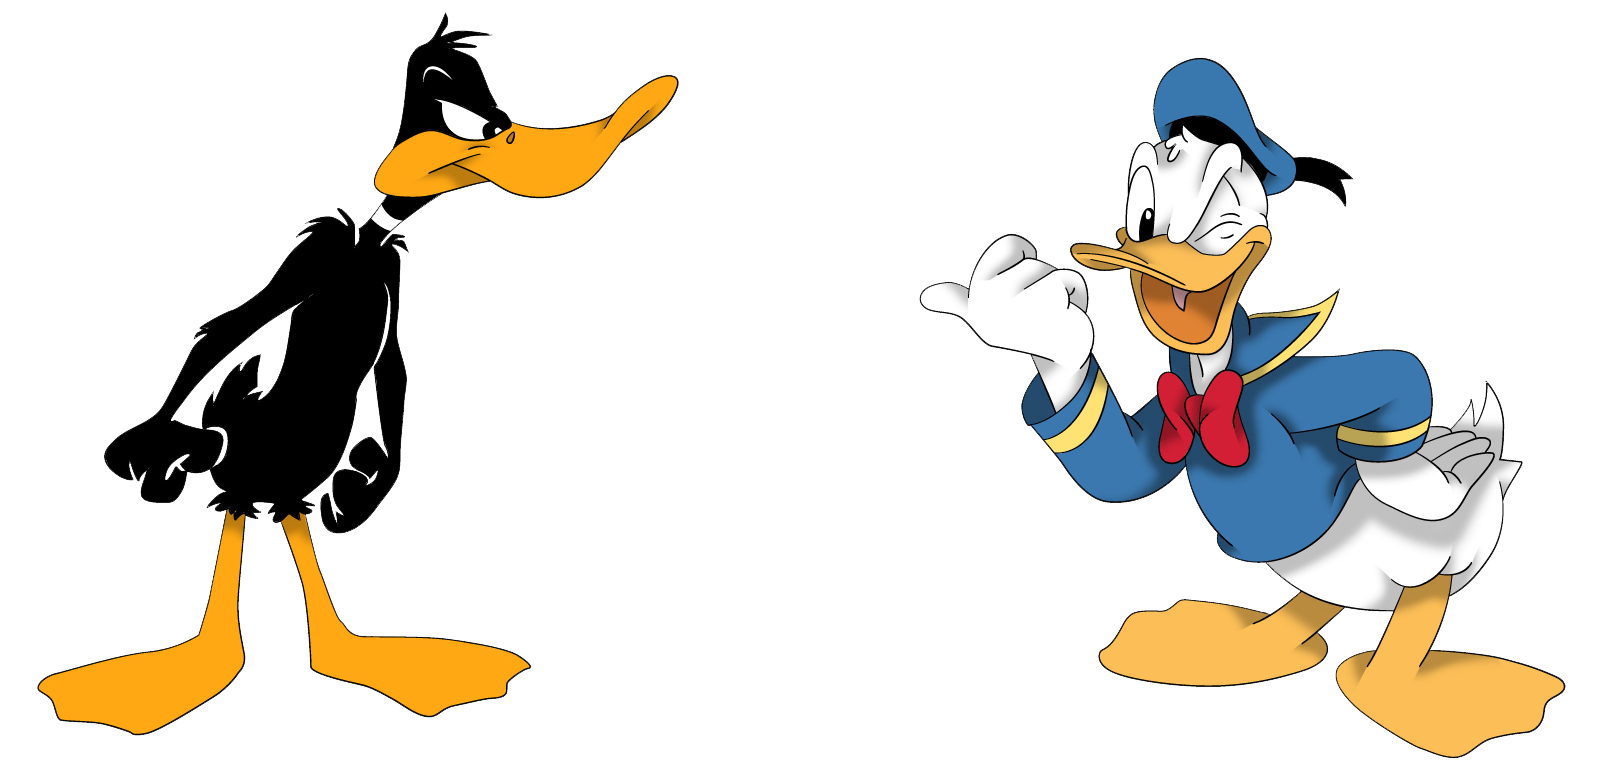 Daffy Duck Woth Donald